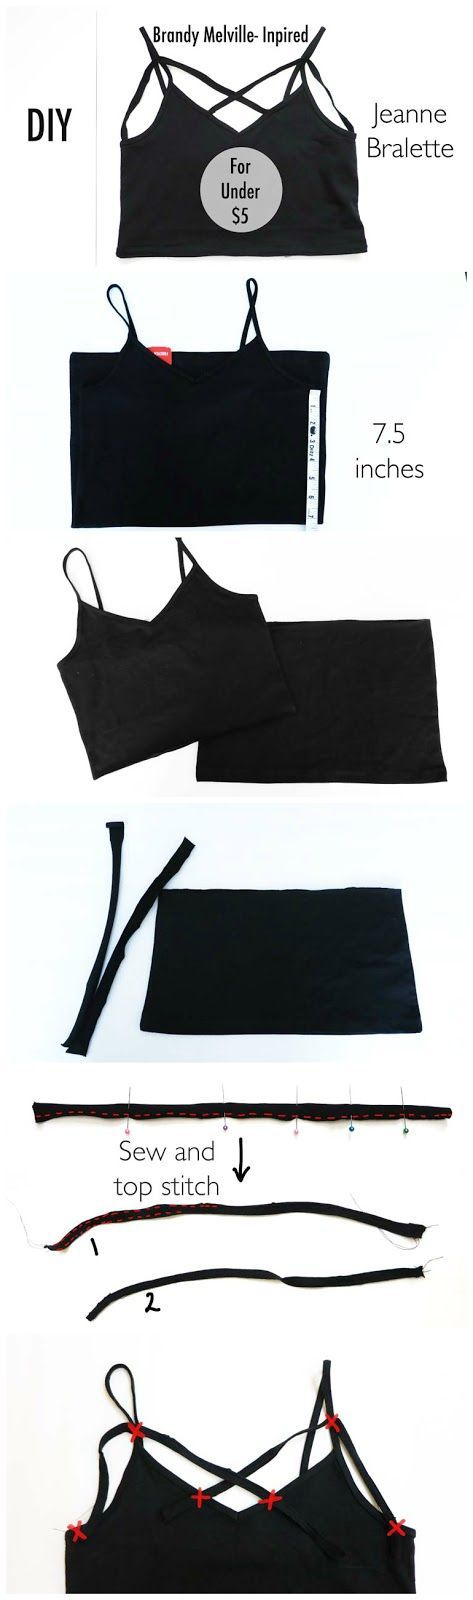 DIY Brandy Melville-Inspired Jeanne Bralette for Under $5    It works nicely as a crop top or under a tank top!